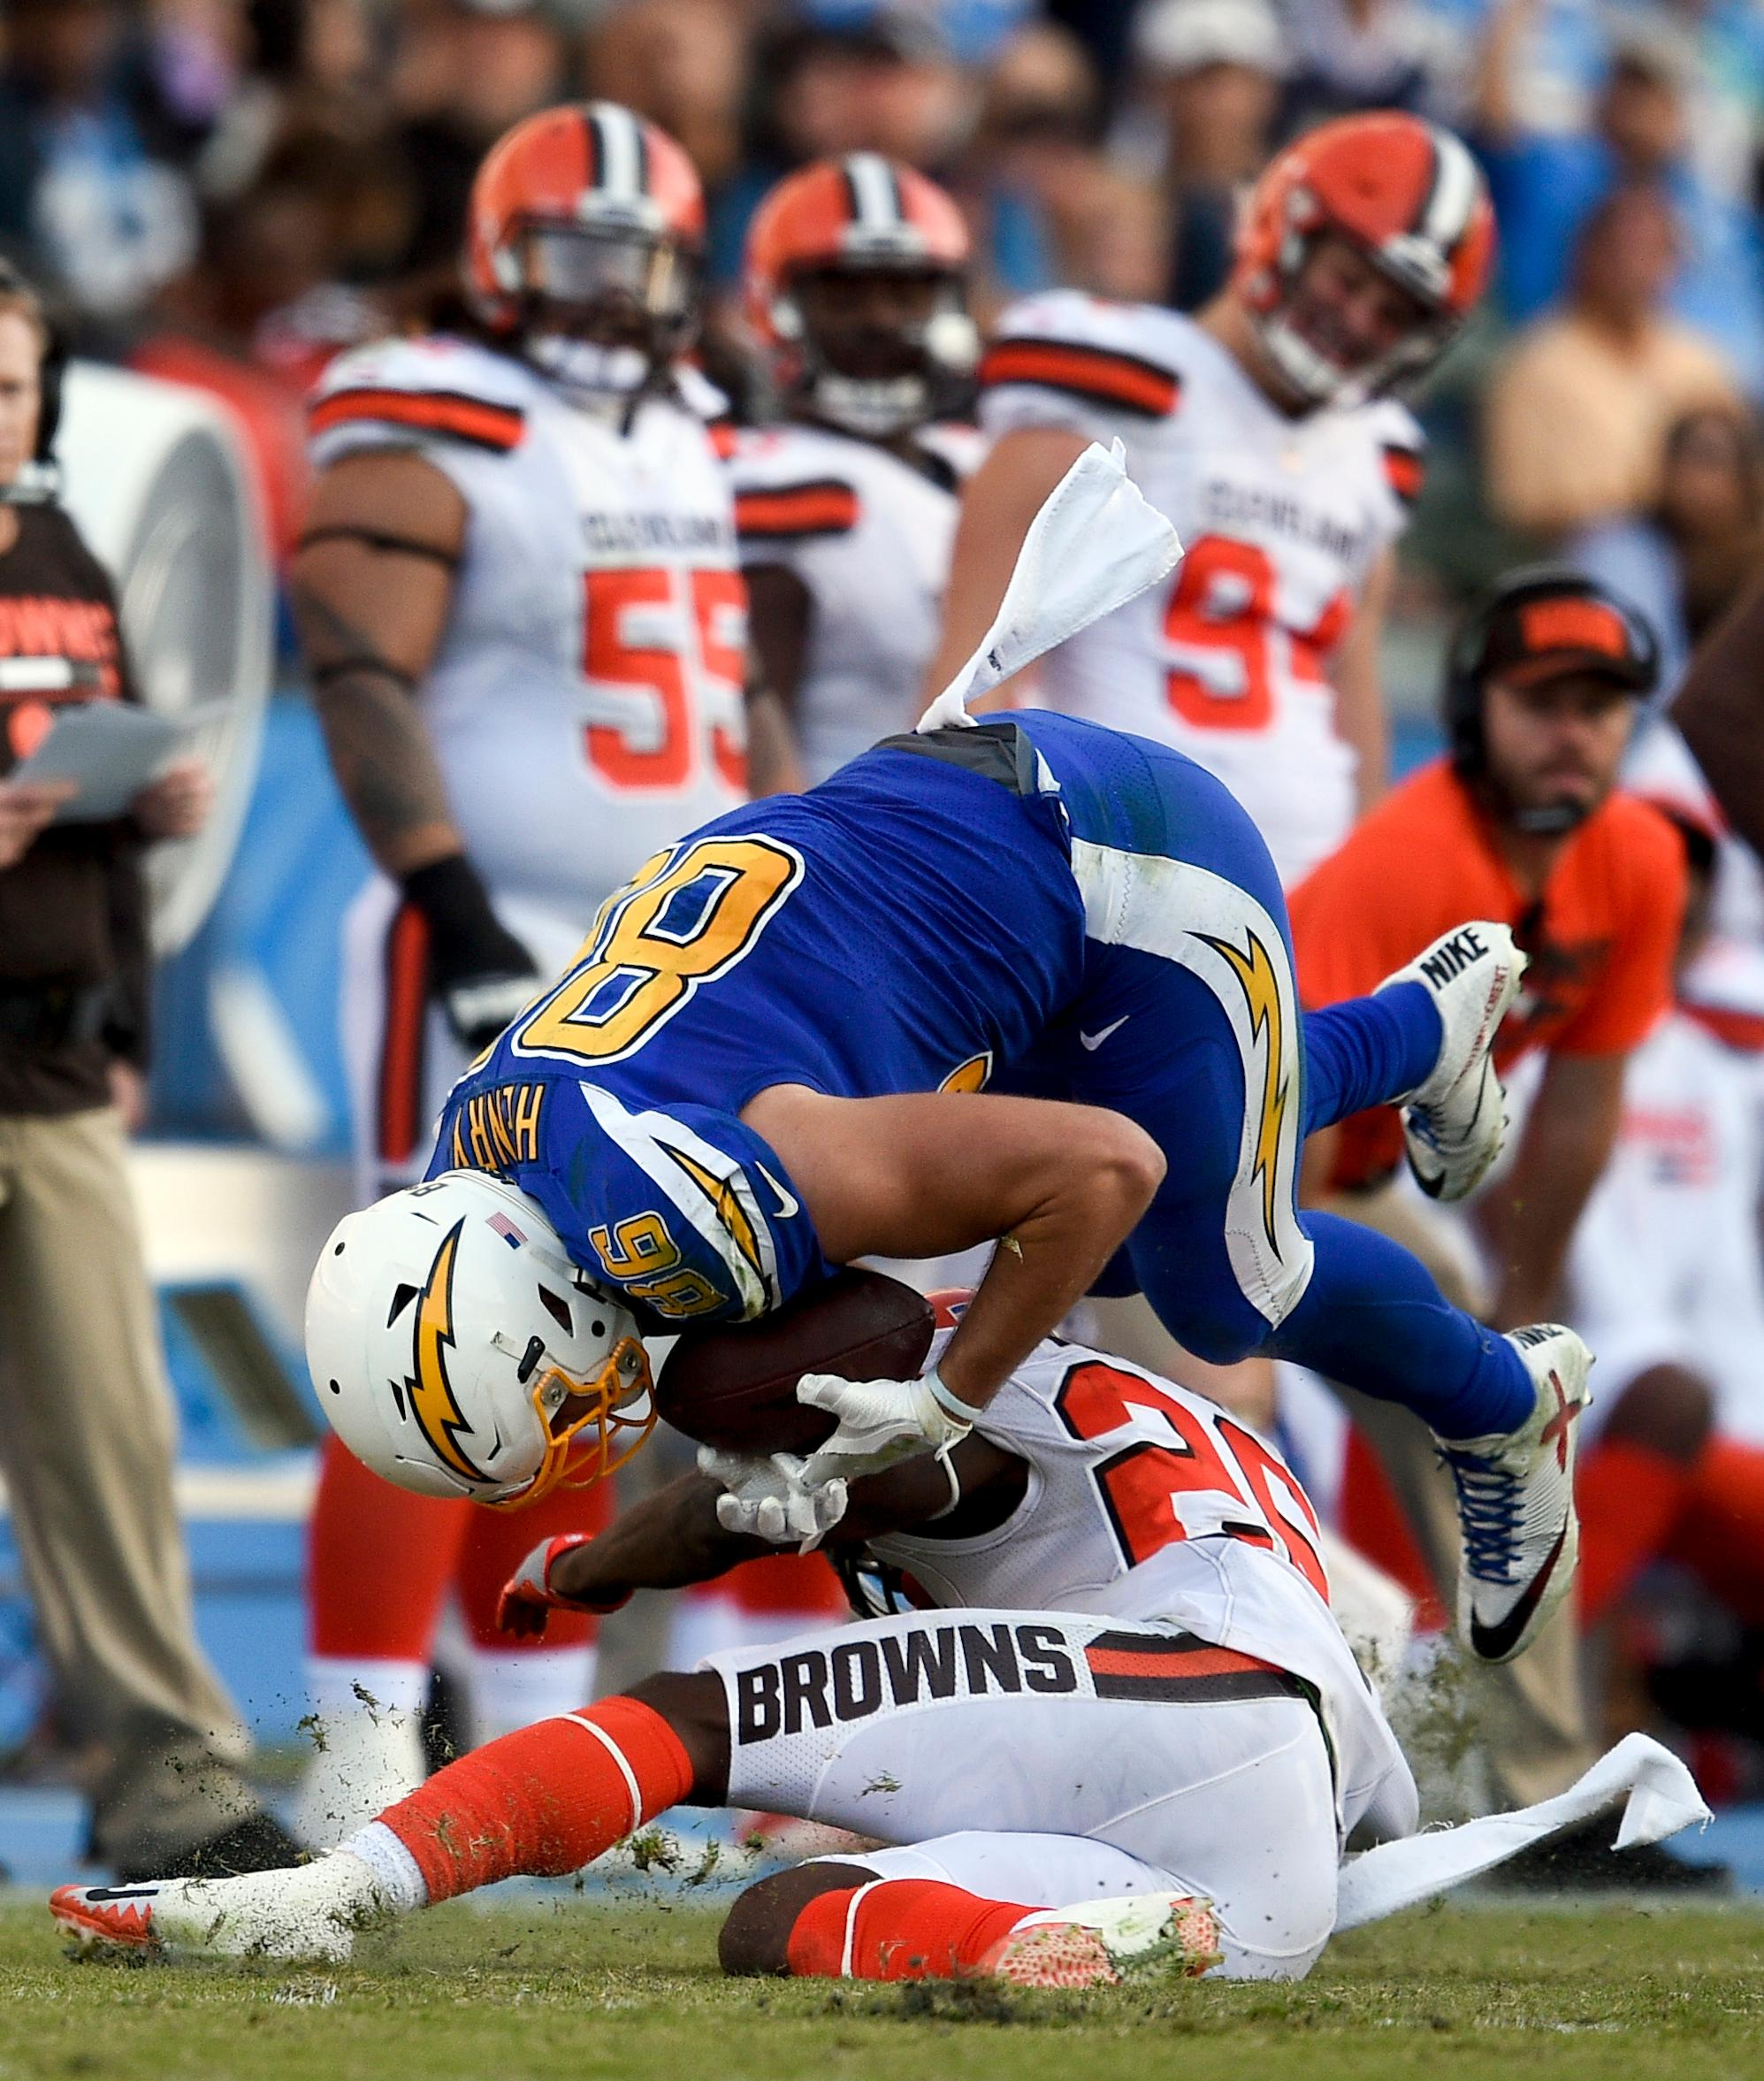 Los Angeles Chargers tight end Hunter Henry is tackled by Cleveland Browns strong safety Derrick Kindred during the second half of an NFL football game Sunday, Dec. 3, 2017, in Carson, Calif. (AP Photo/Kelvin Kuo)